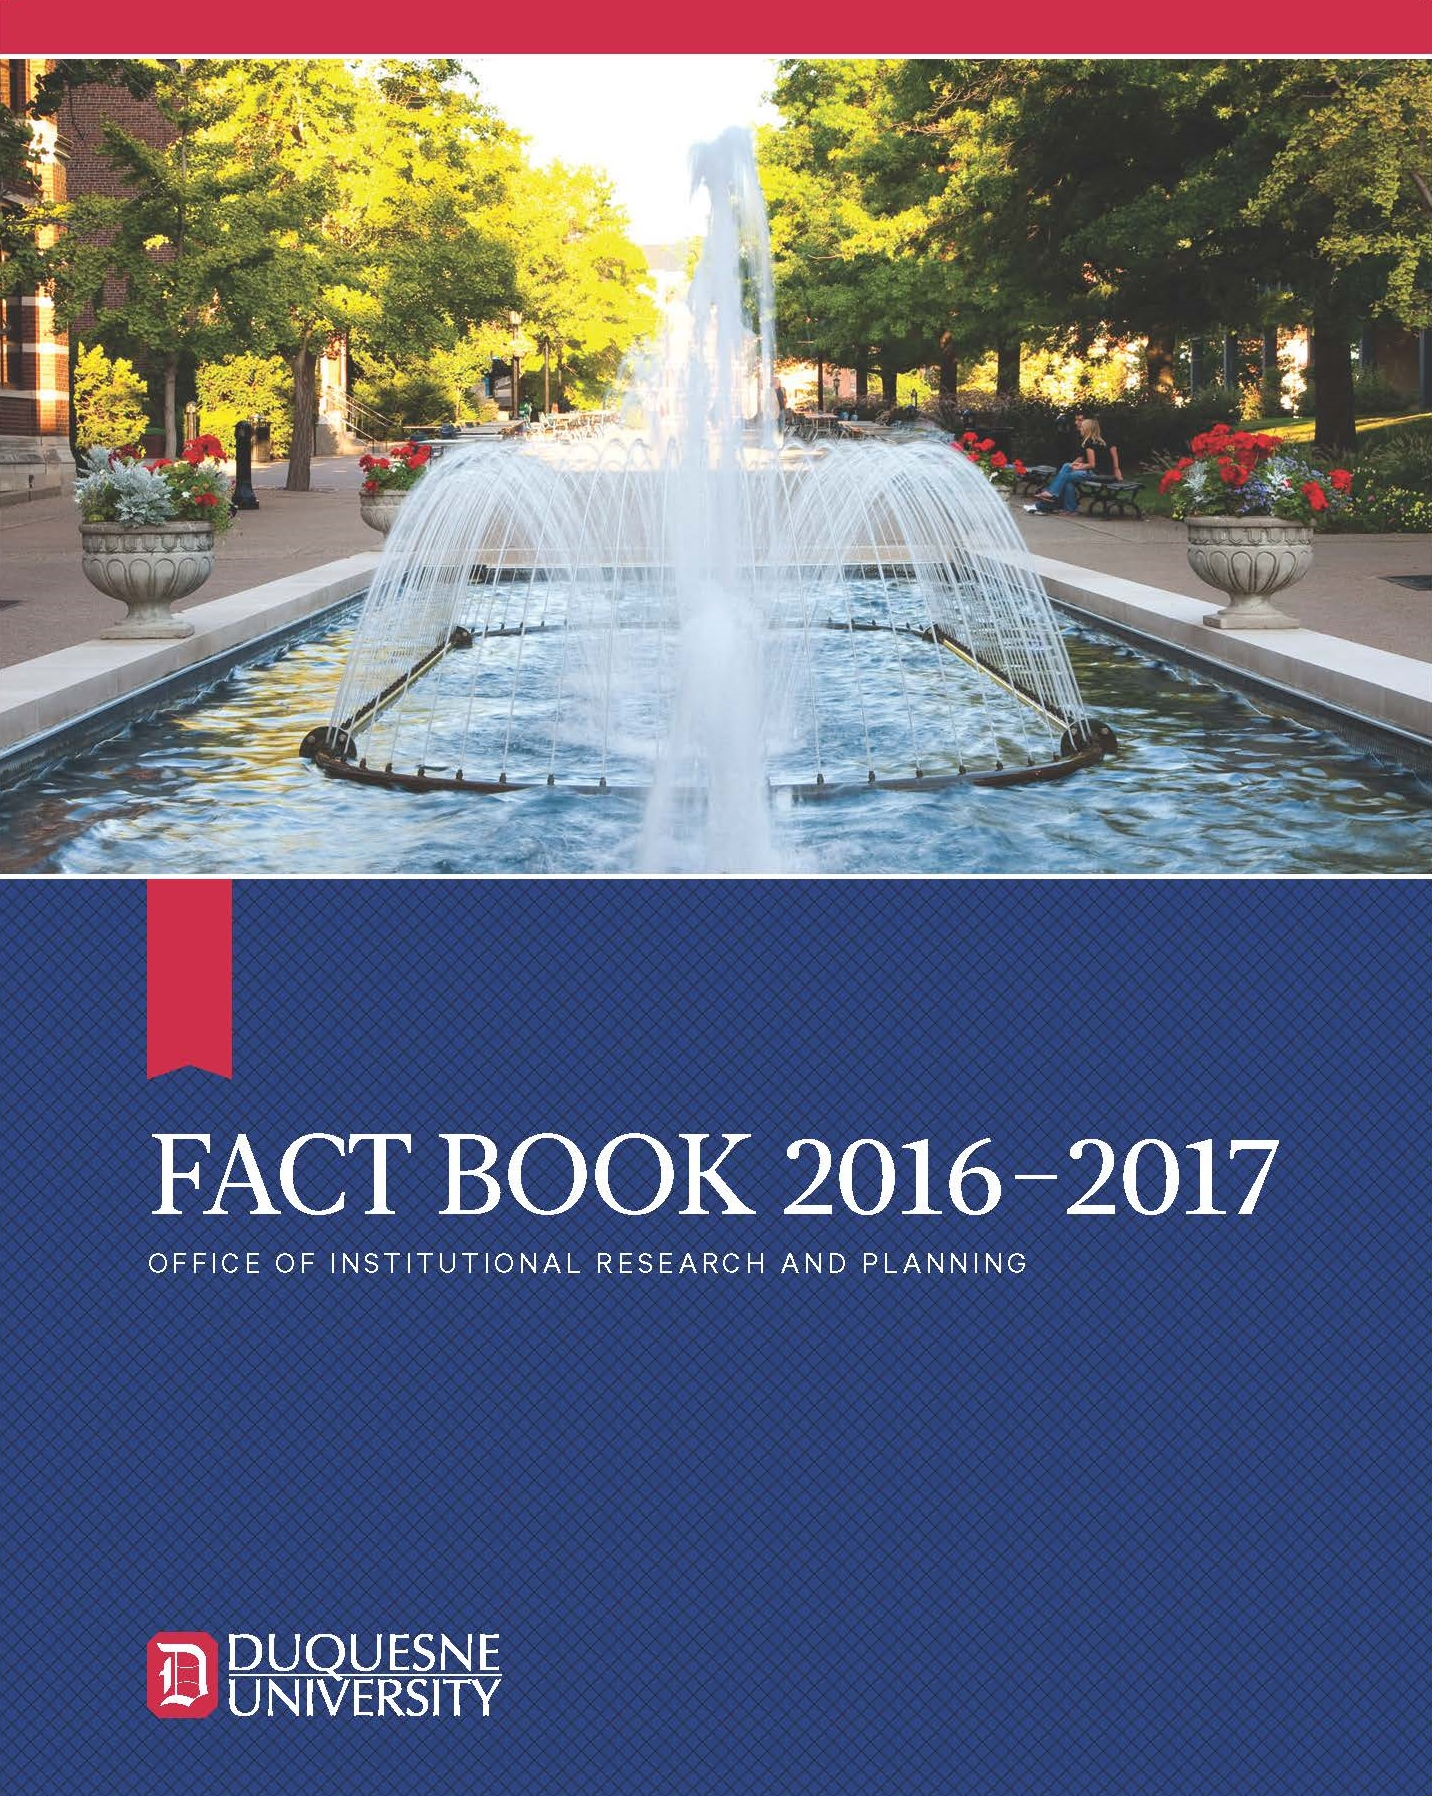 2016-2017 fact book cover image